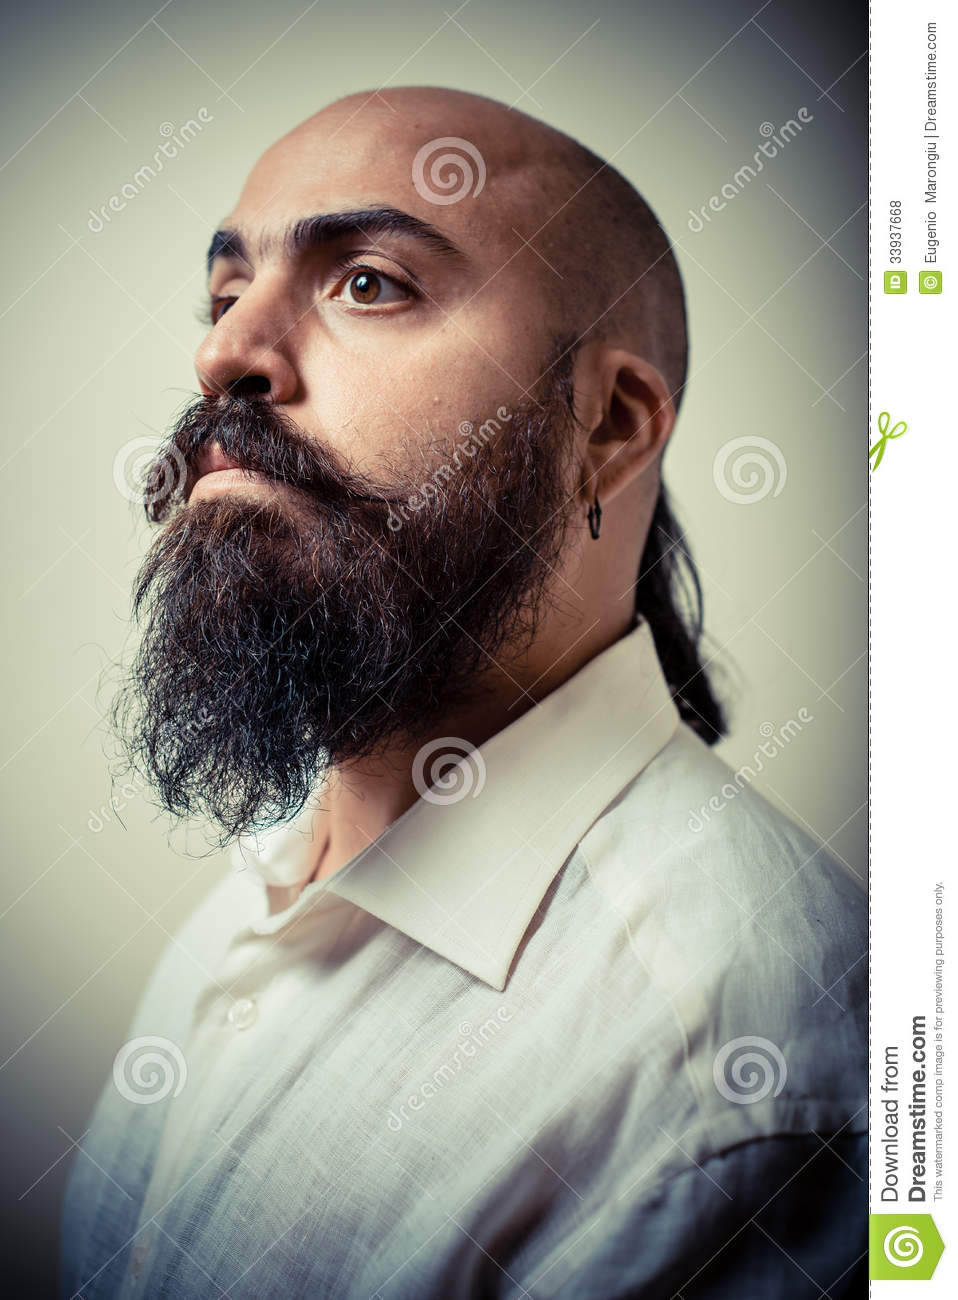 Magnificent Long Beard And Mustache Man With White Shirt Royalty Free Stock Short Hairstyles Gunalazisus